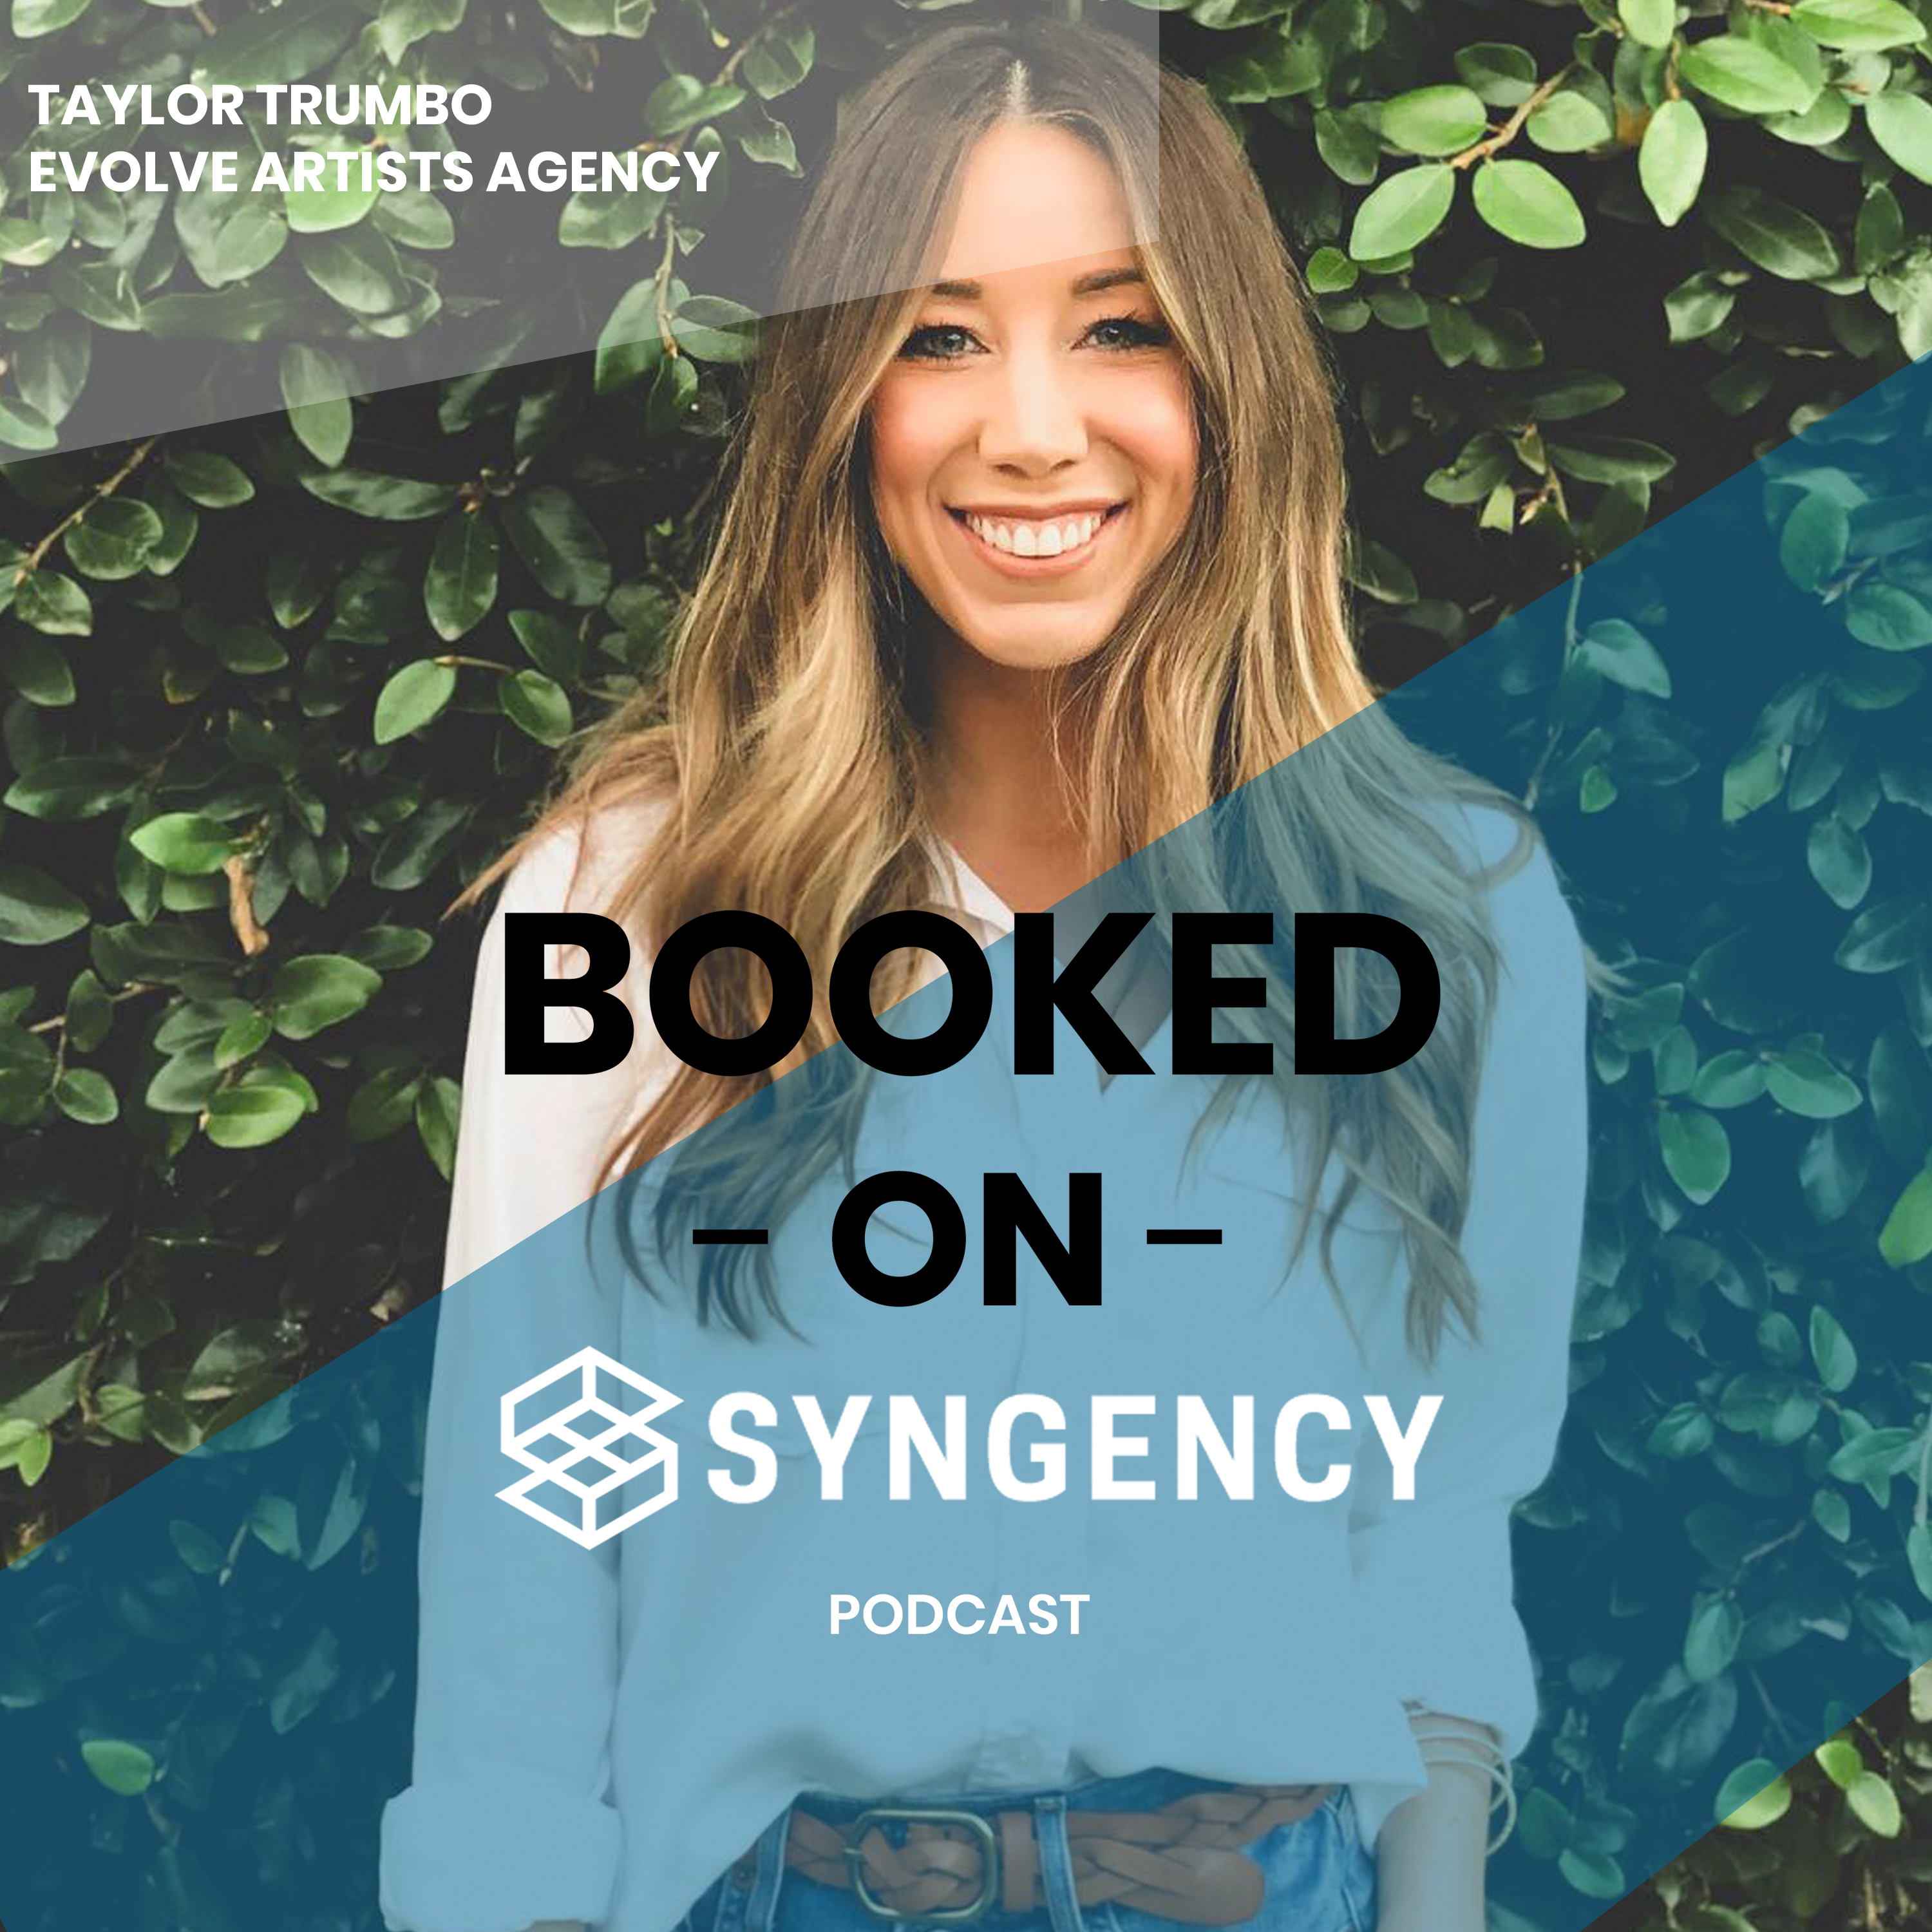 Booked On Syngency (Epi 2) w/ Taylor Trumbo of Evolve Artists Agency